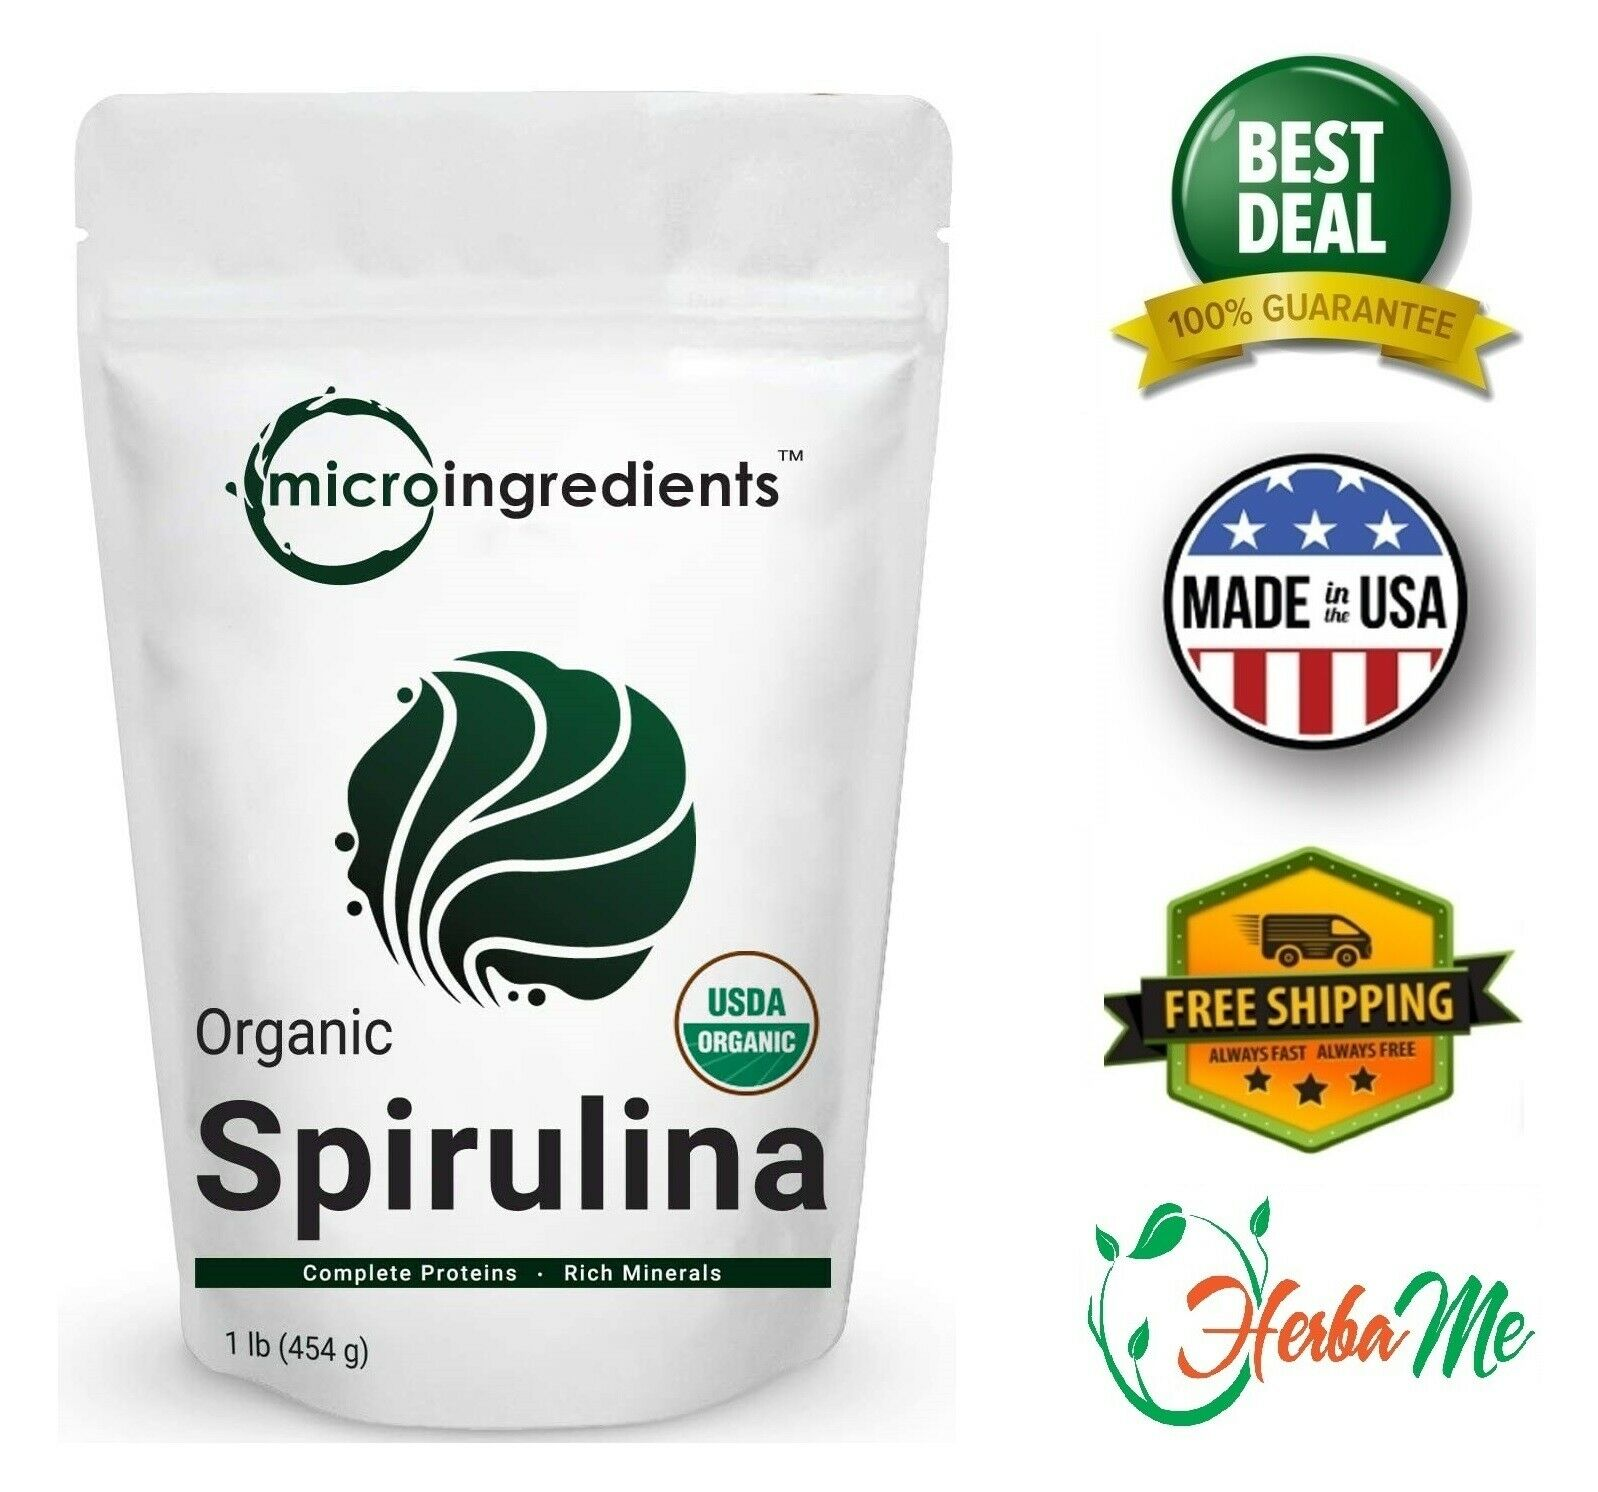 Organic Spirulina Powder 16 Oz Rich in Antioxidant Minerals Fatty Acids Fiber